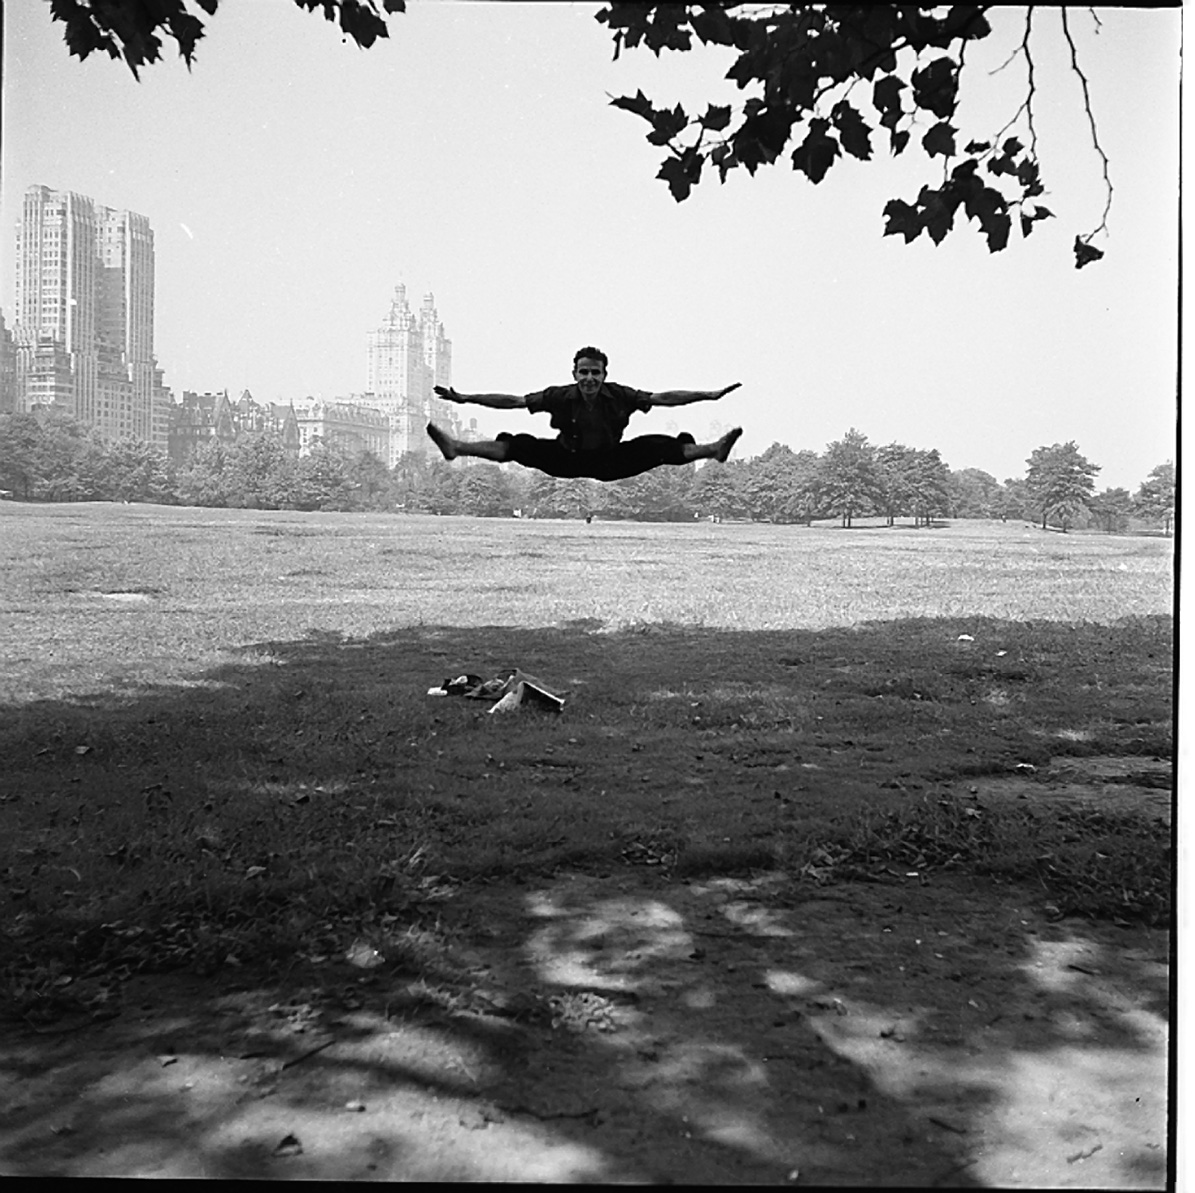 Vivian Maier, Man Doing Splits in Mid Air, Central Park, NY, 1955